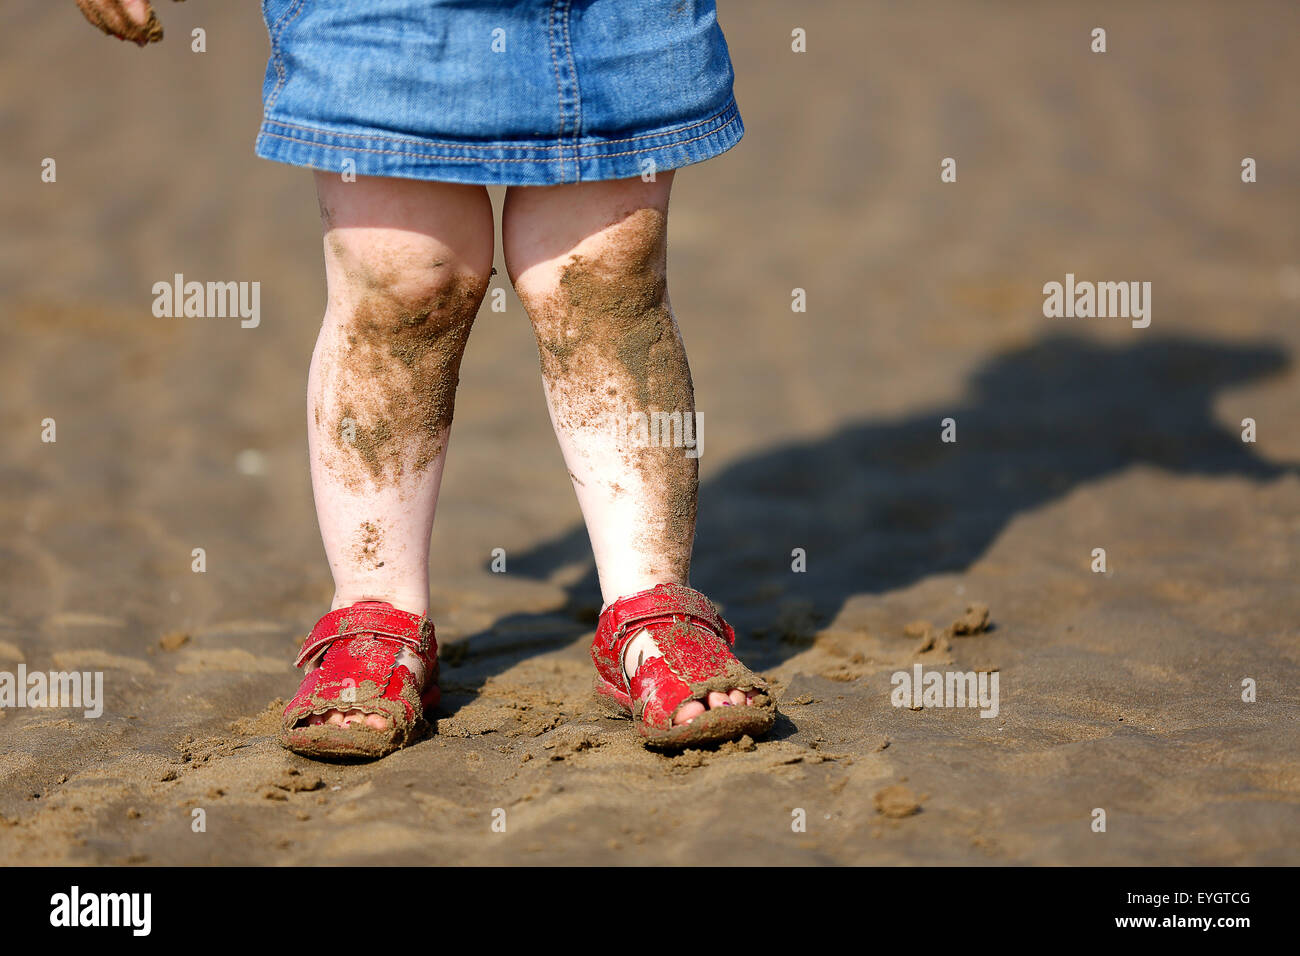 A young female child standing on an English beach. She has sand covered legs from where she  has been playing nad - Stock Image